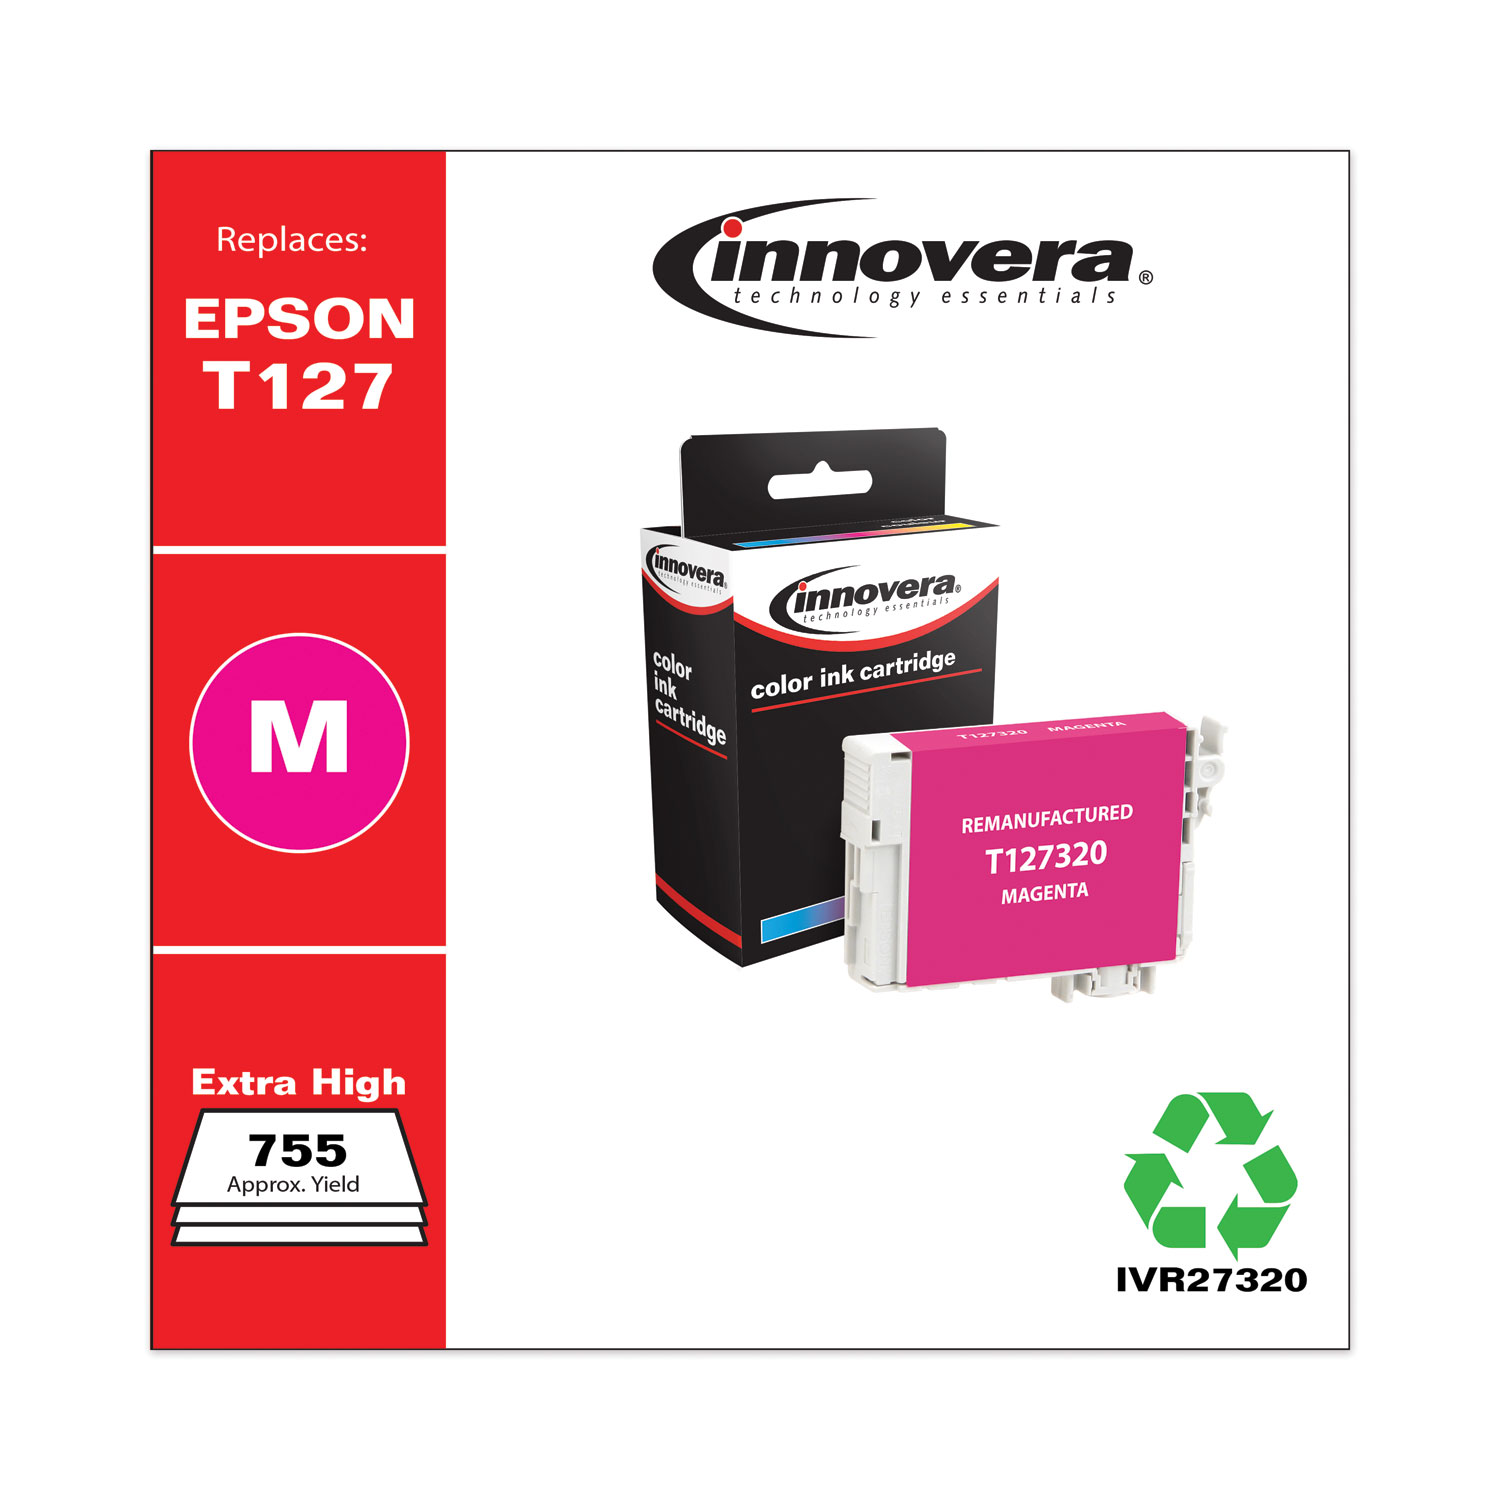 Remanufactured Magenta Ink, Replacement for Epson 127 (T127320), 755 Page-Yield IVR27320